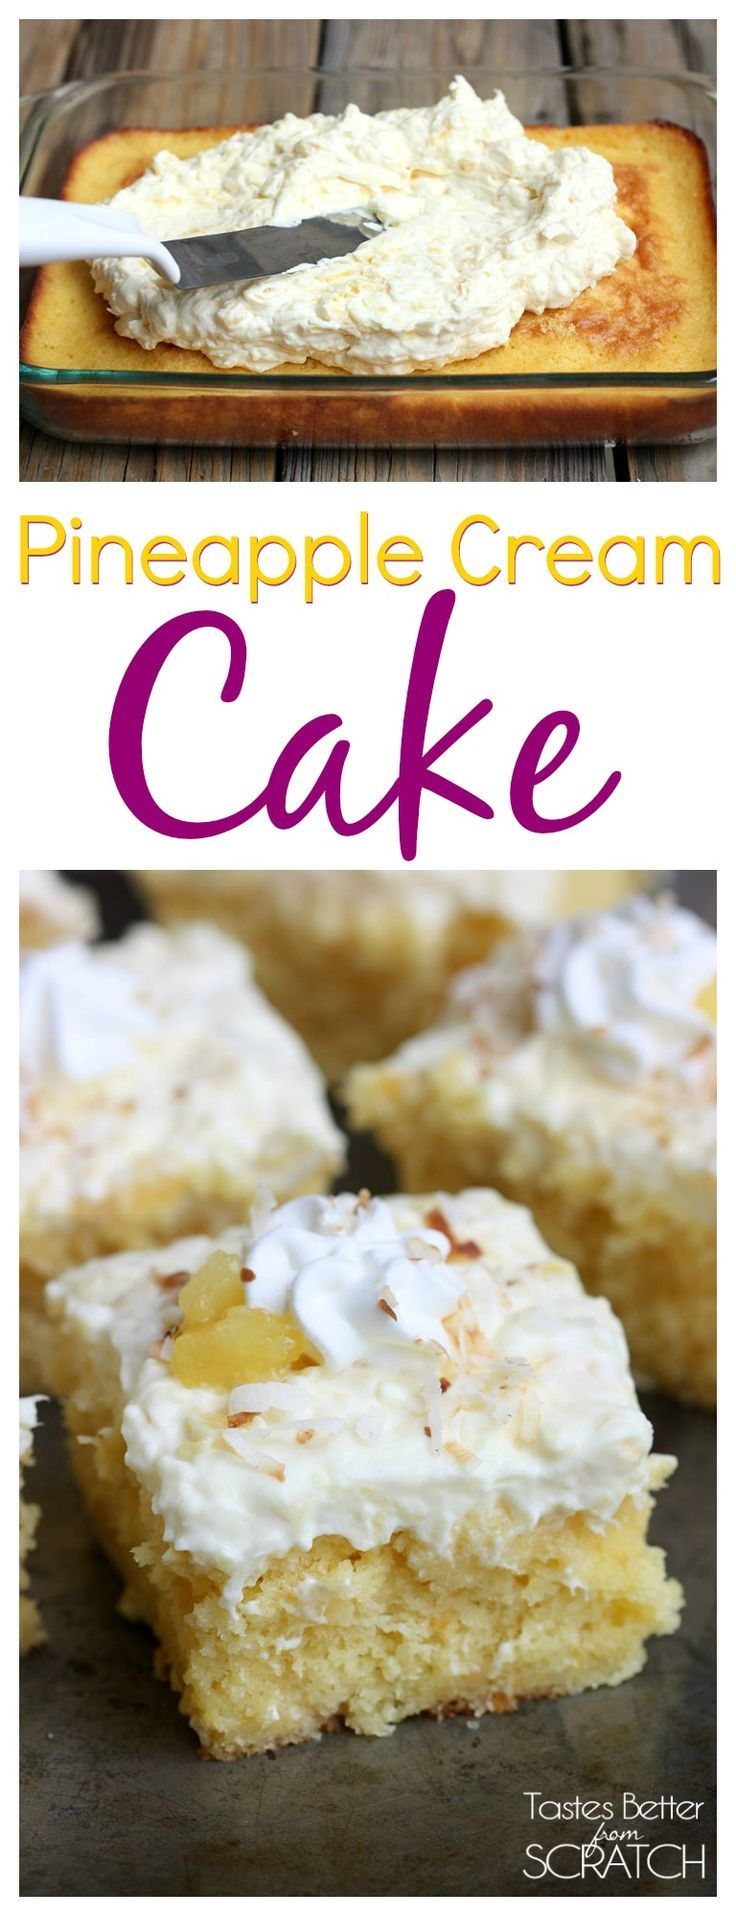 Pineapple Cream Cake is part of Cake - Pineapple Cream Cake is a yellow cake with a creamy pineapple frosting topped with a dollop of whipped cream